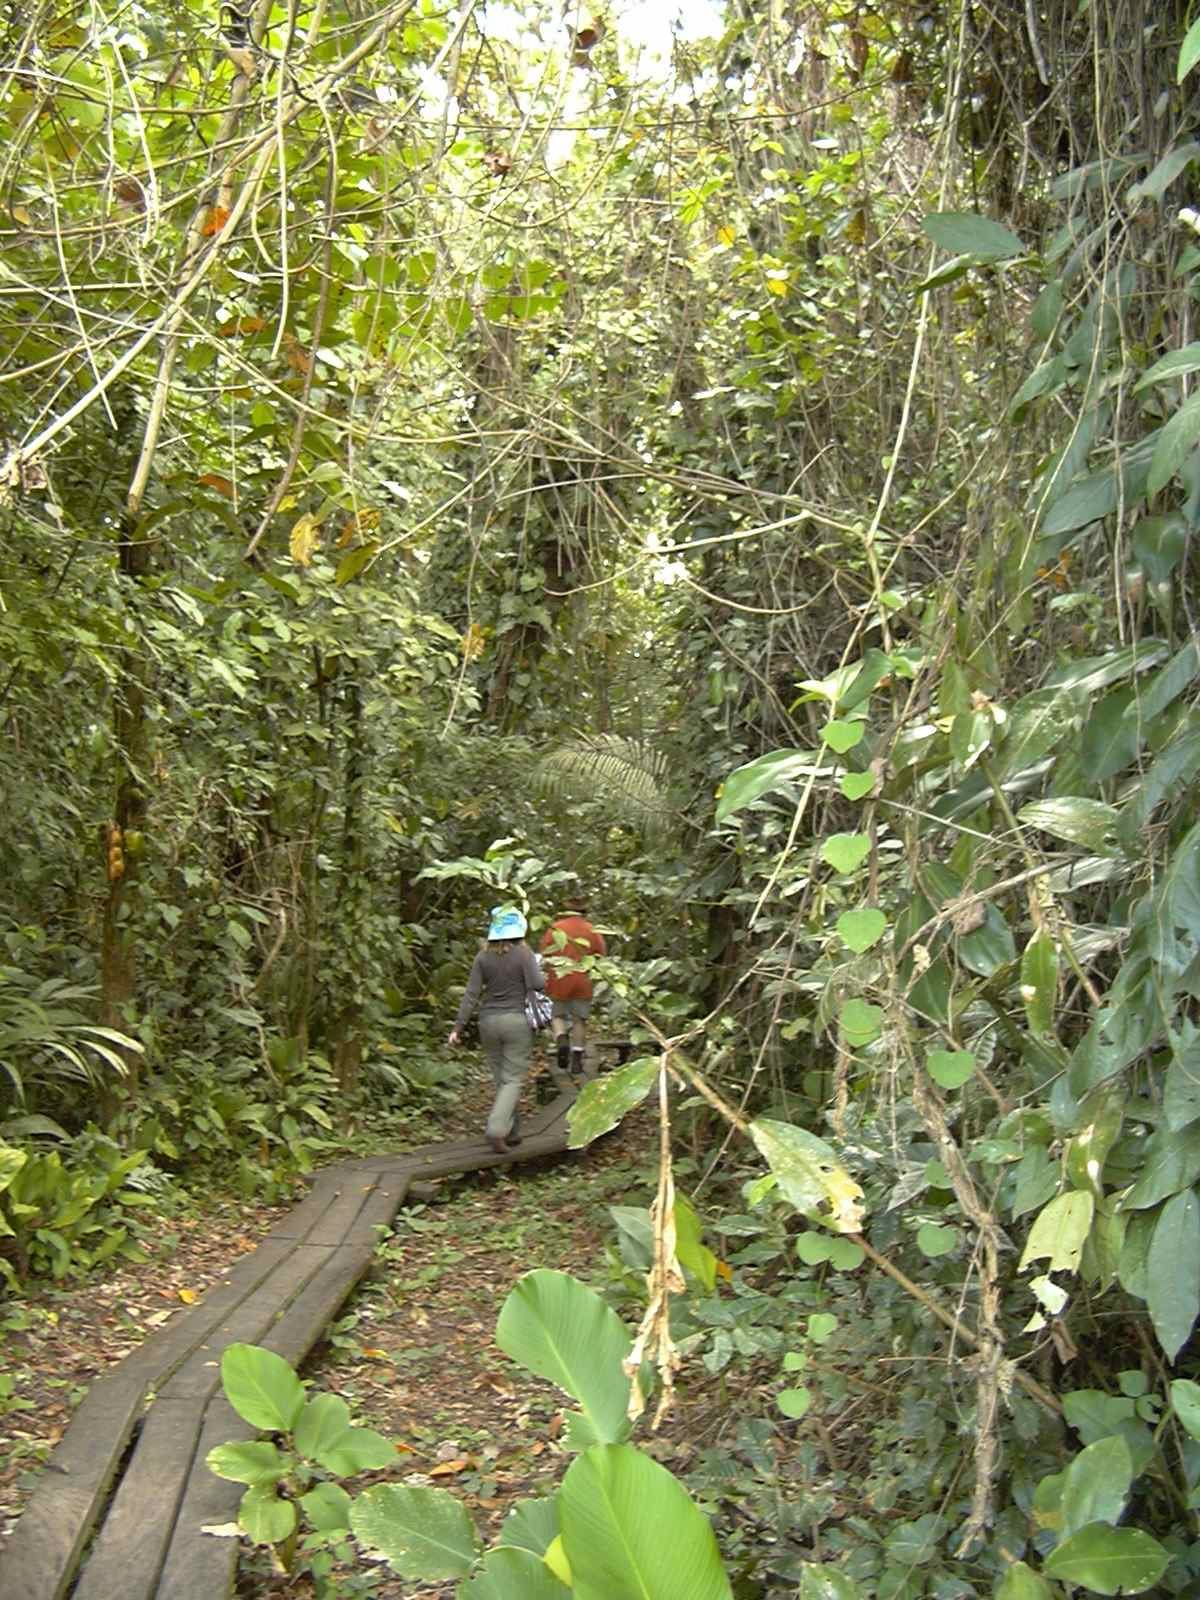 Lori and Mike walking thru the jungle P1000728 (2).jpg